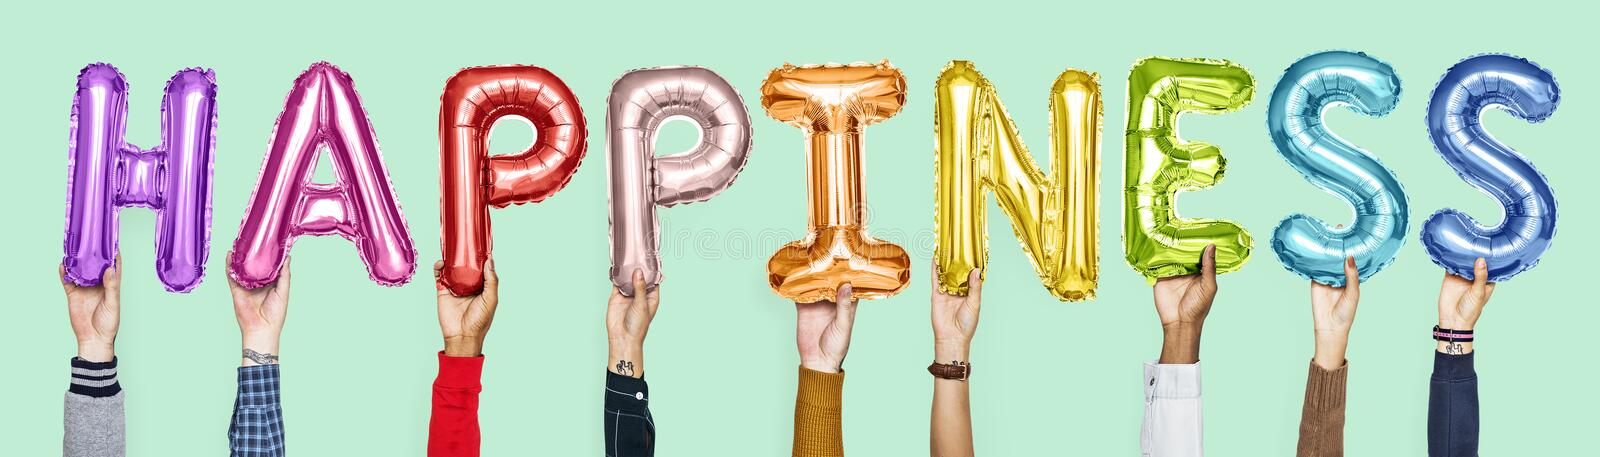 Colorful alphabet balloons forming the word happiness royalty free stock photos